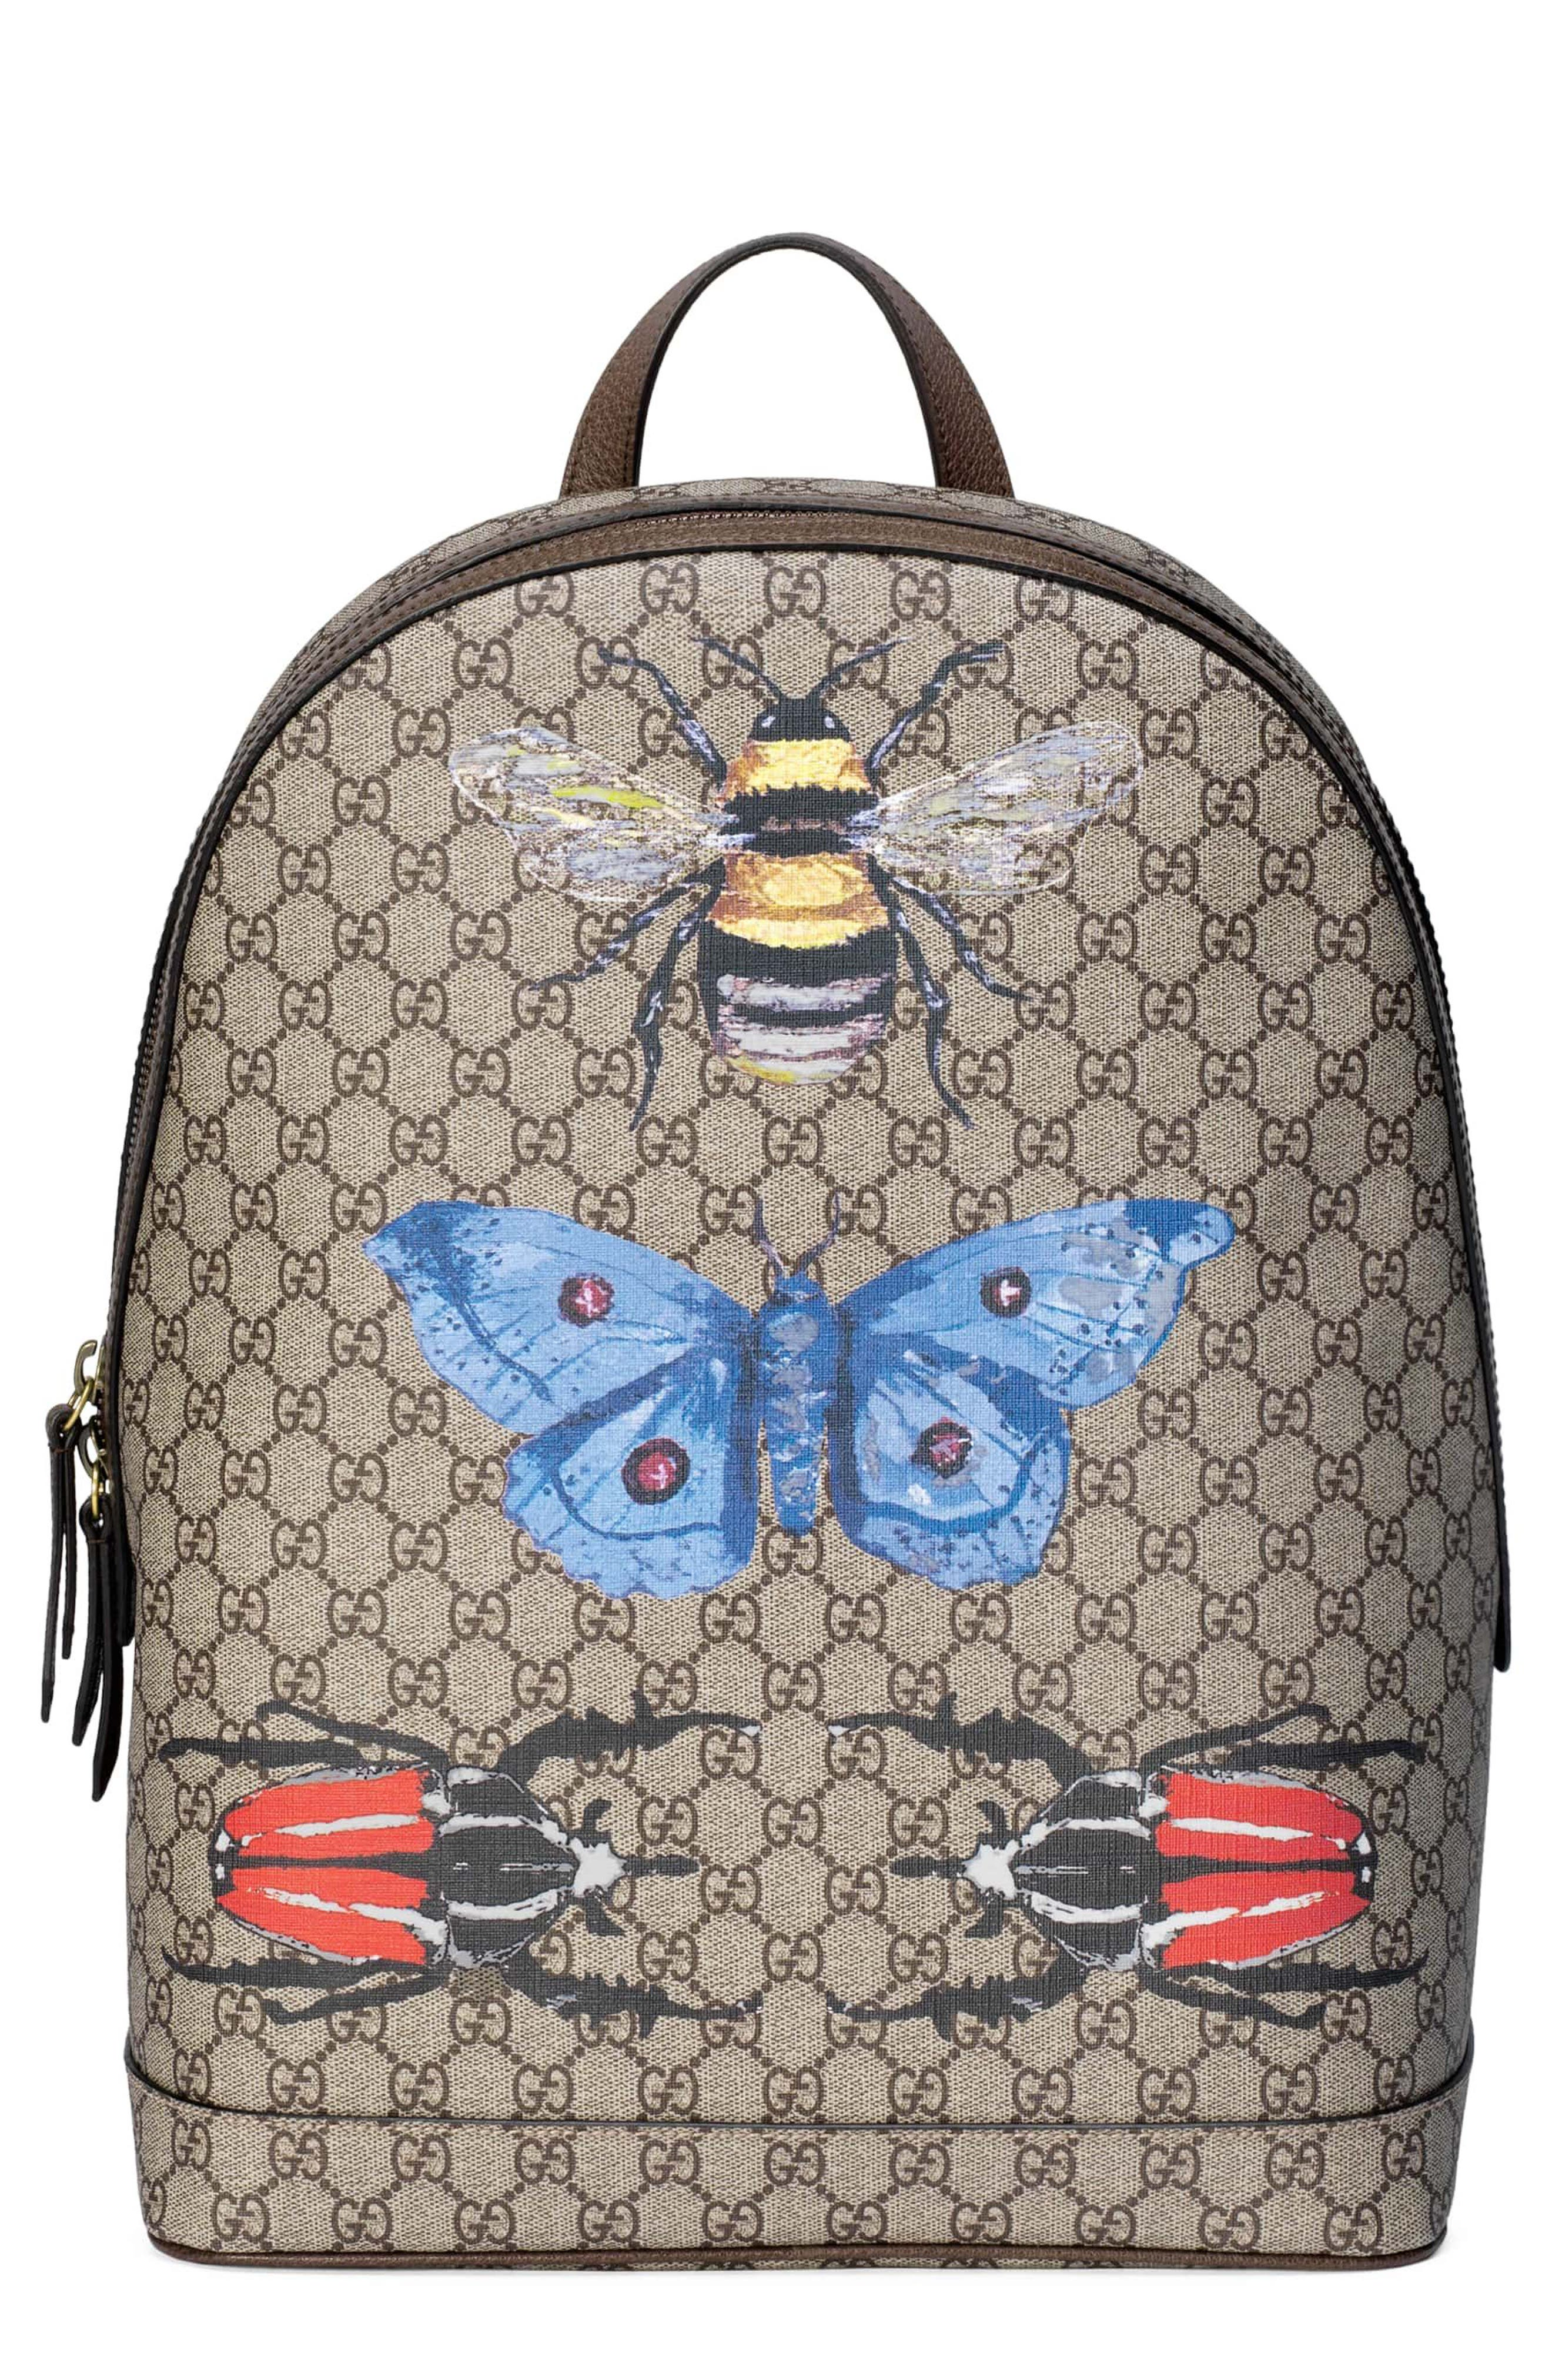 Main Image - Gucci Insect Print GG Supreme Canvas Backpack